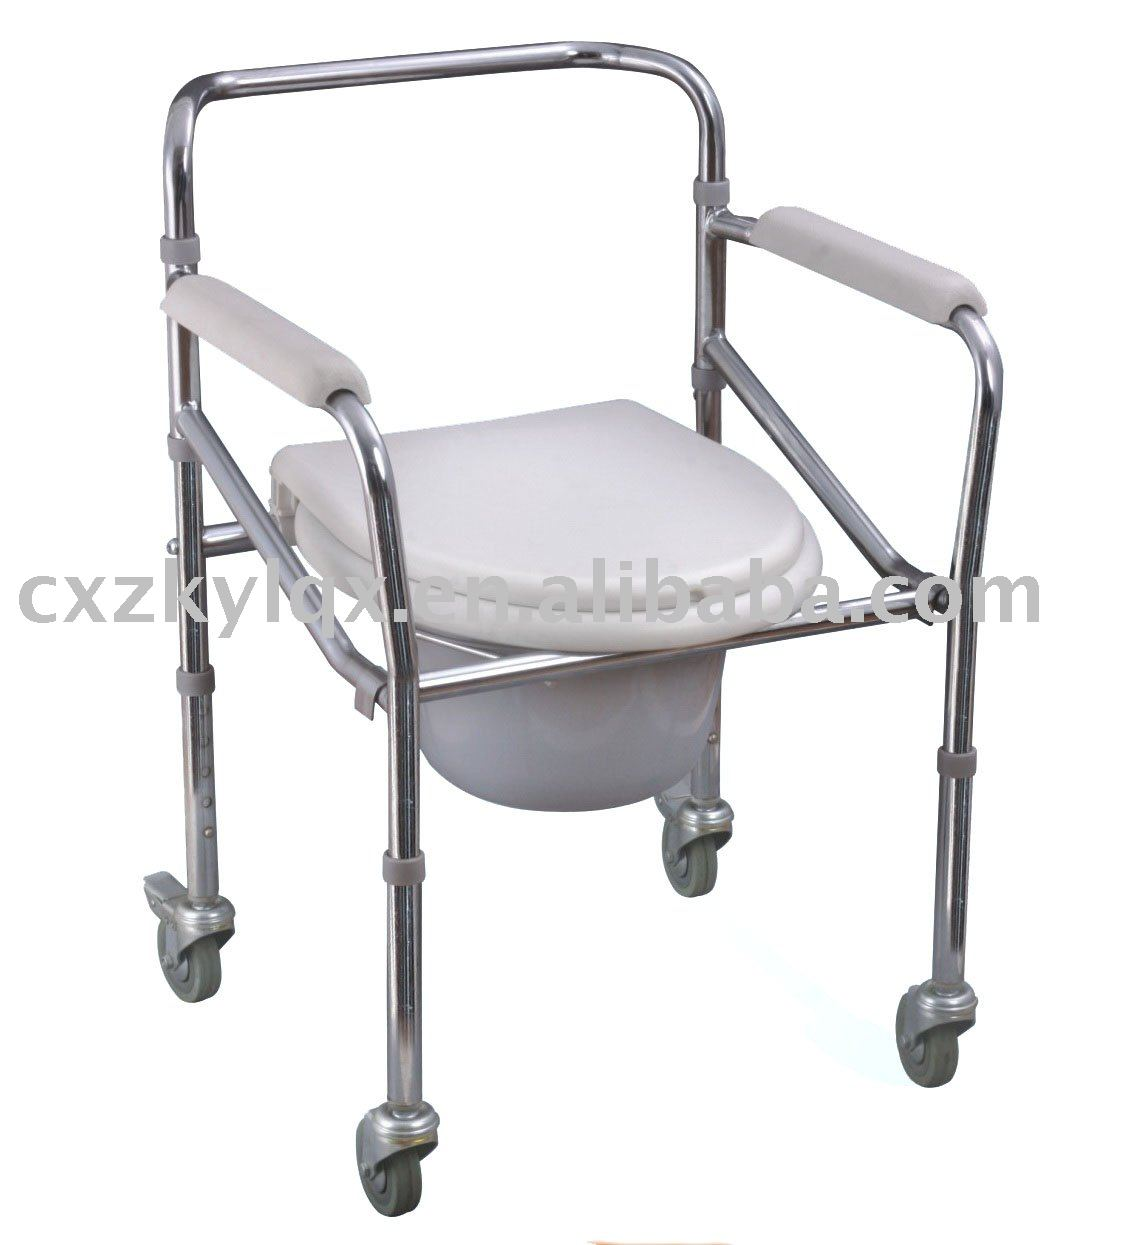 Toilet Chair, Toilet Chair Suppliers and Manufacturers at Alibaba.com